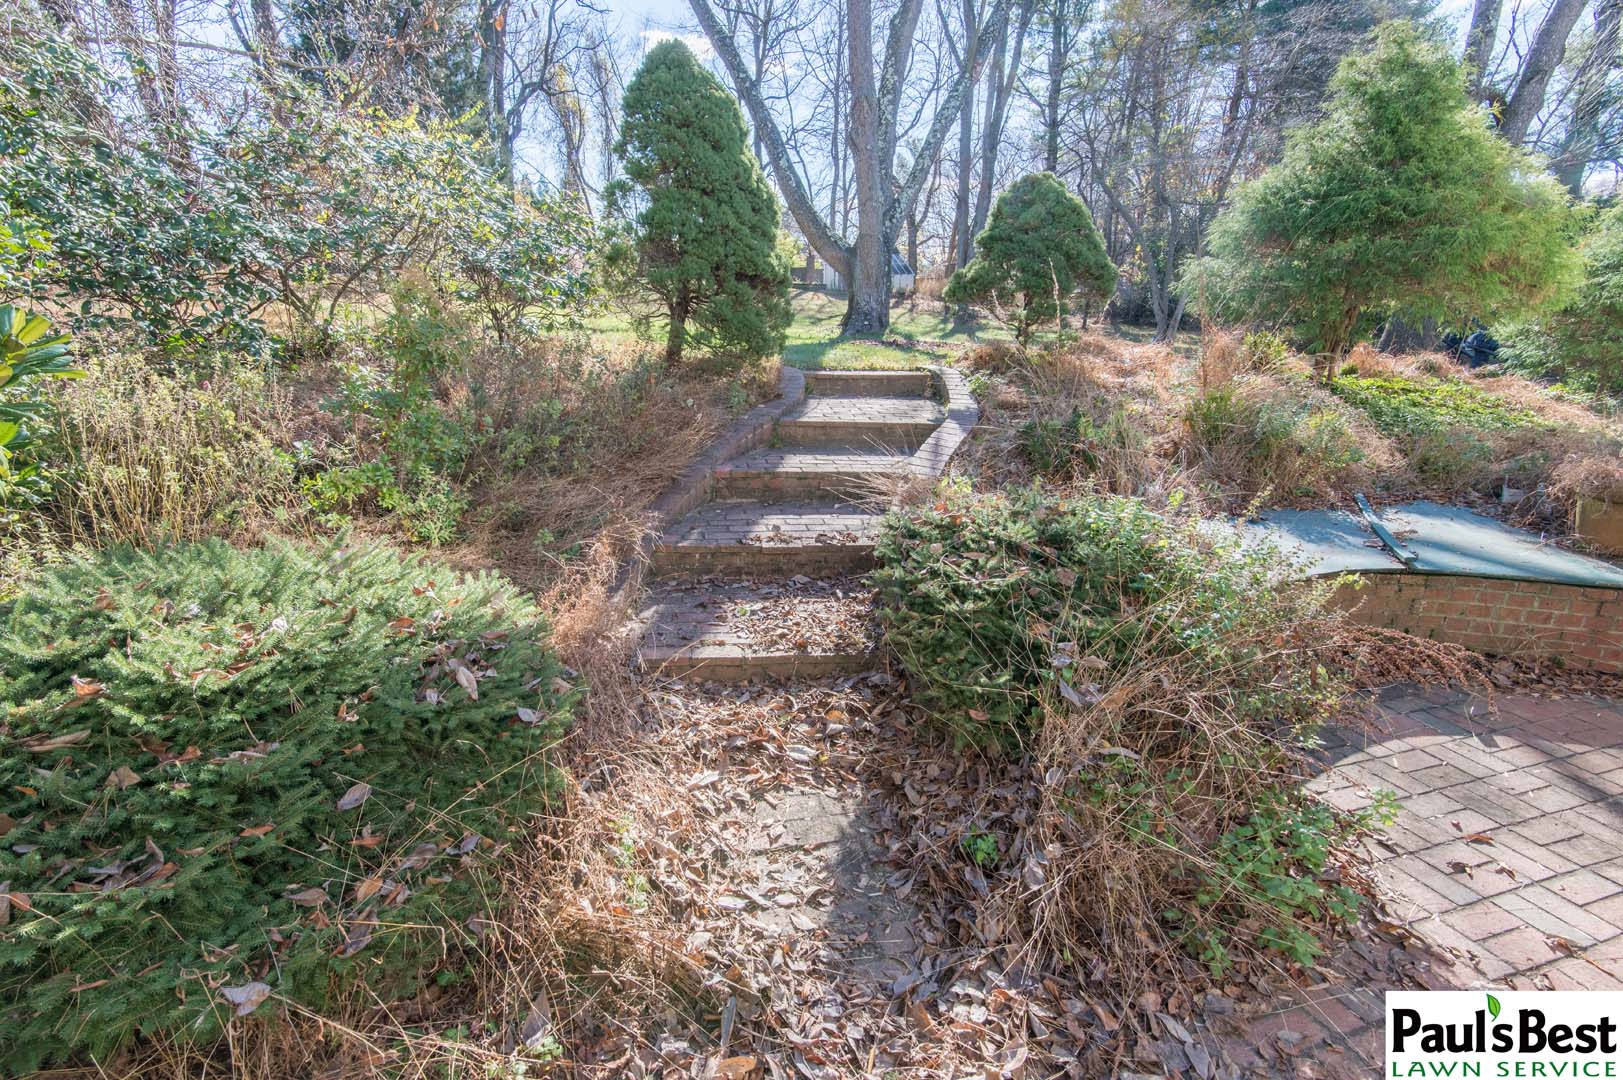 https://paulsbestlawn.com/pbls-img/portfolio/routine-property-maintenance/before-and-after/web-ready/large/BAPM1-b-After-Leaf-Clean-up-and-Trimming-in-McLean-VA.jpg